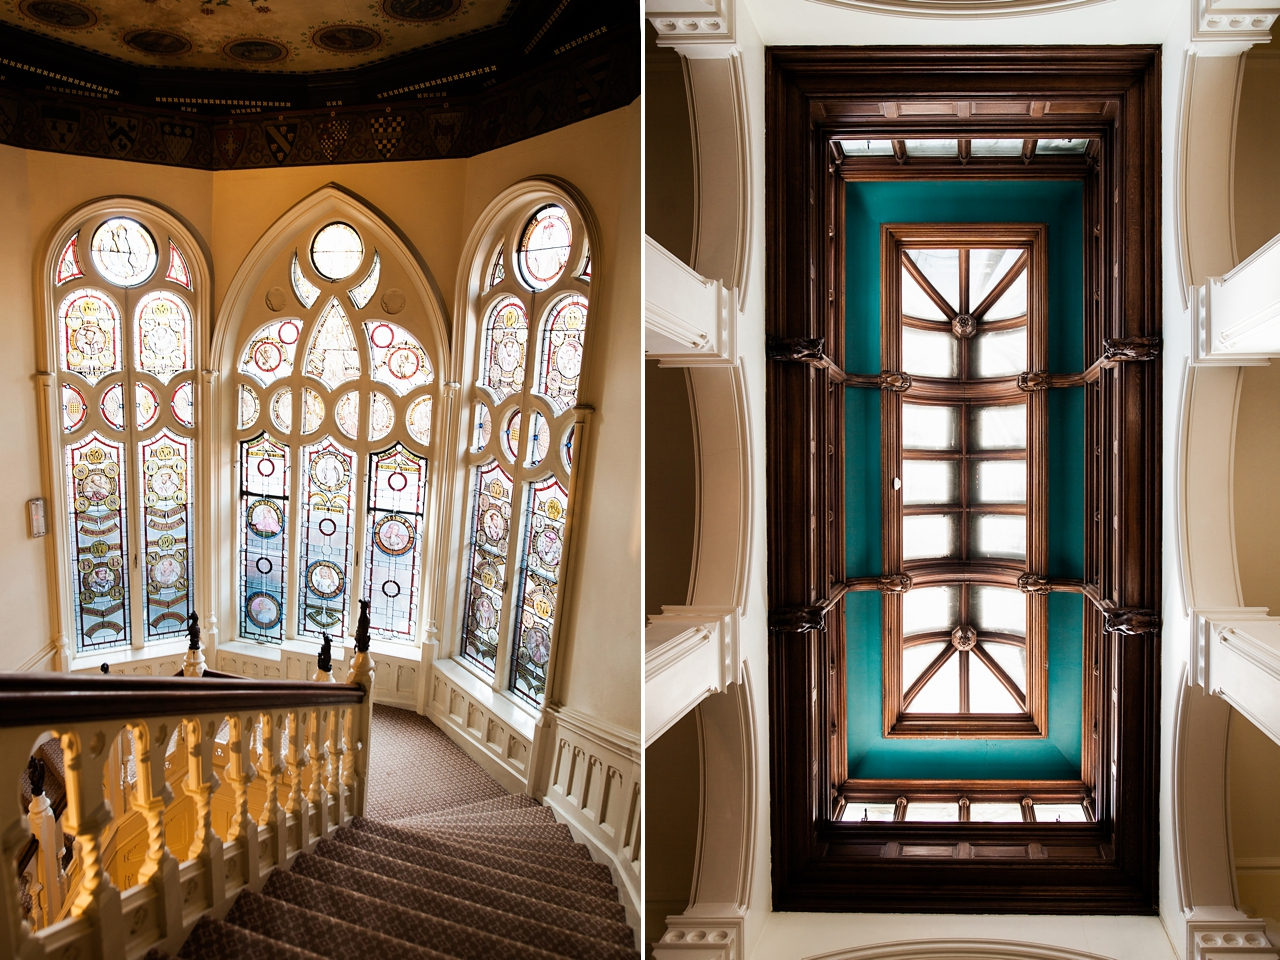 The beautiful staircase and stained glass windows at The Elvetham